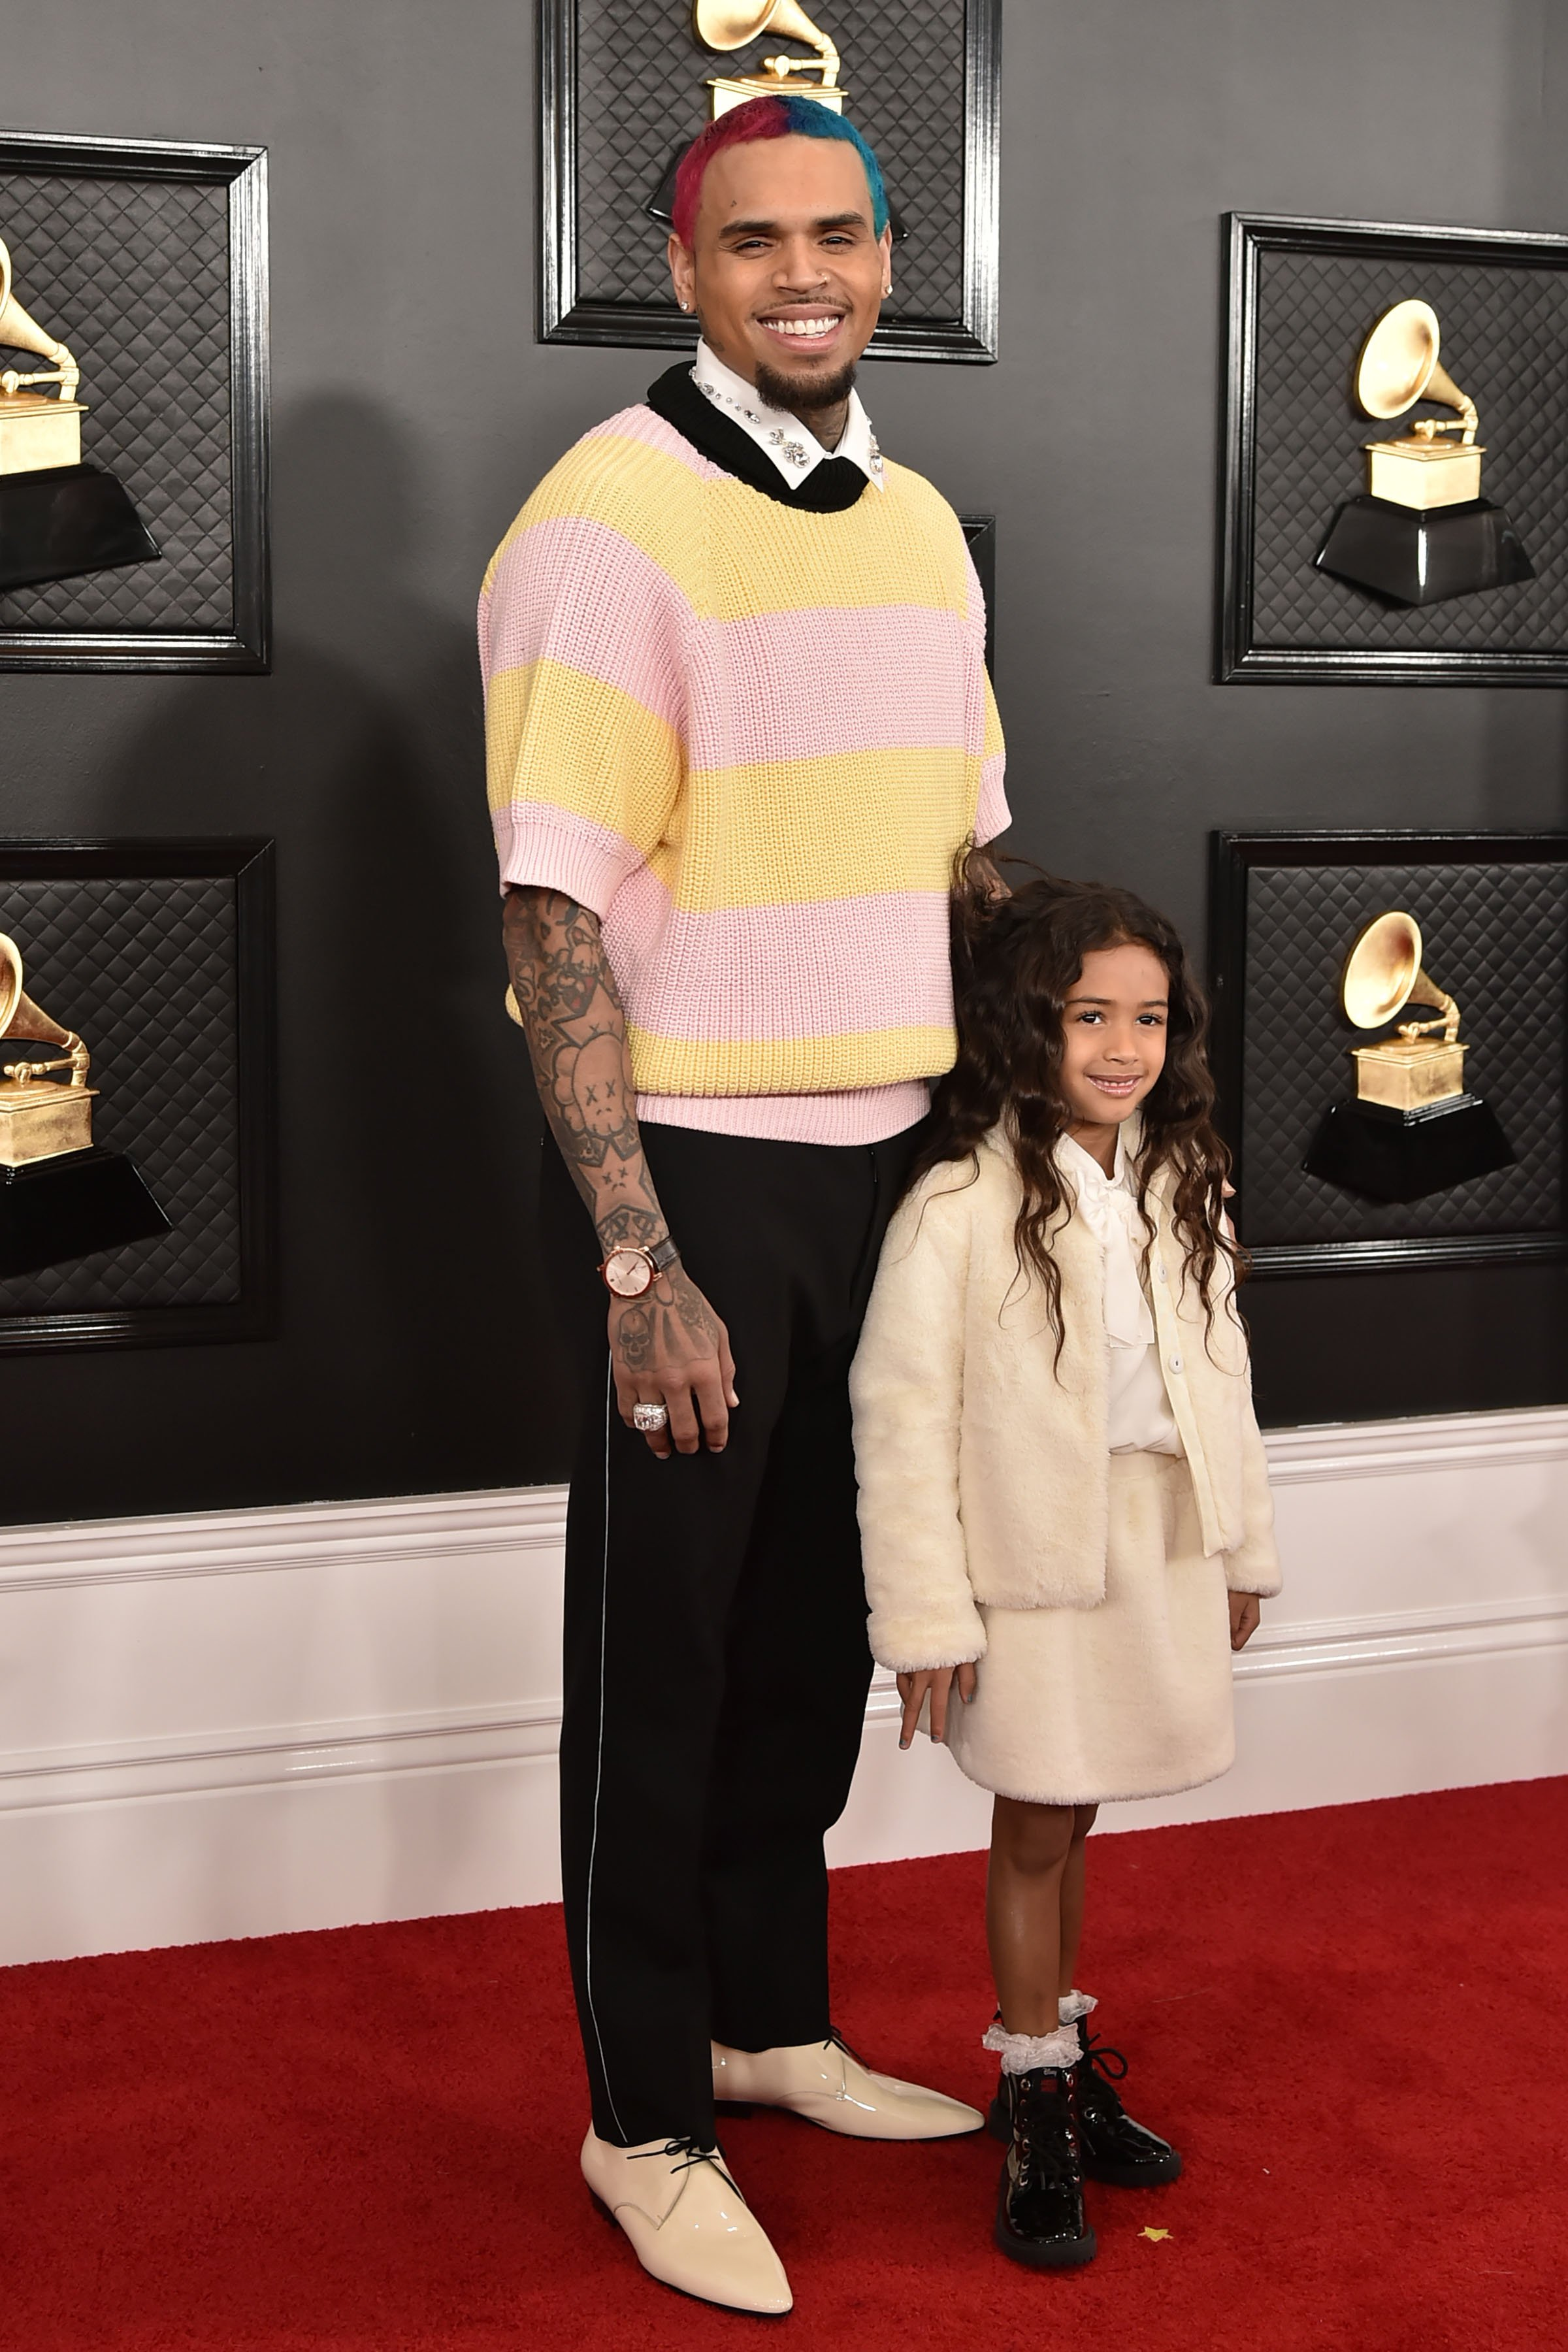 Chris Brown and Royalty Brown attend the 62nd Annual Grammy Awards at Staples Center in Los Angeles, CA. on January 26, 2020 | Photo: Getty Images